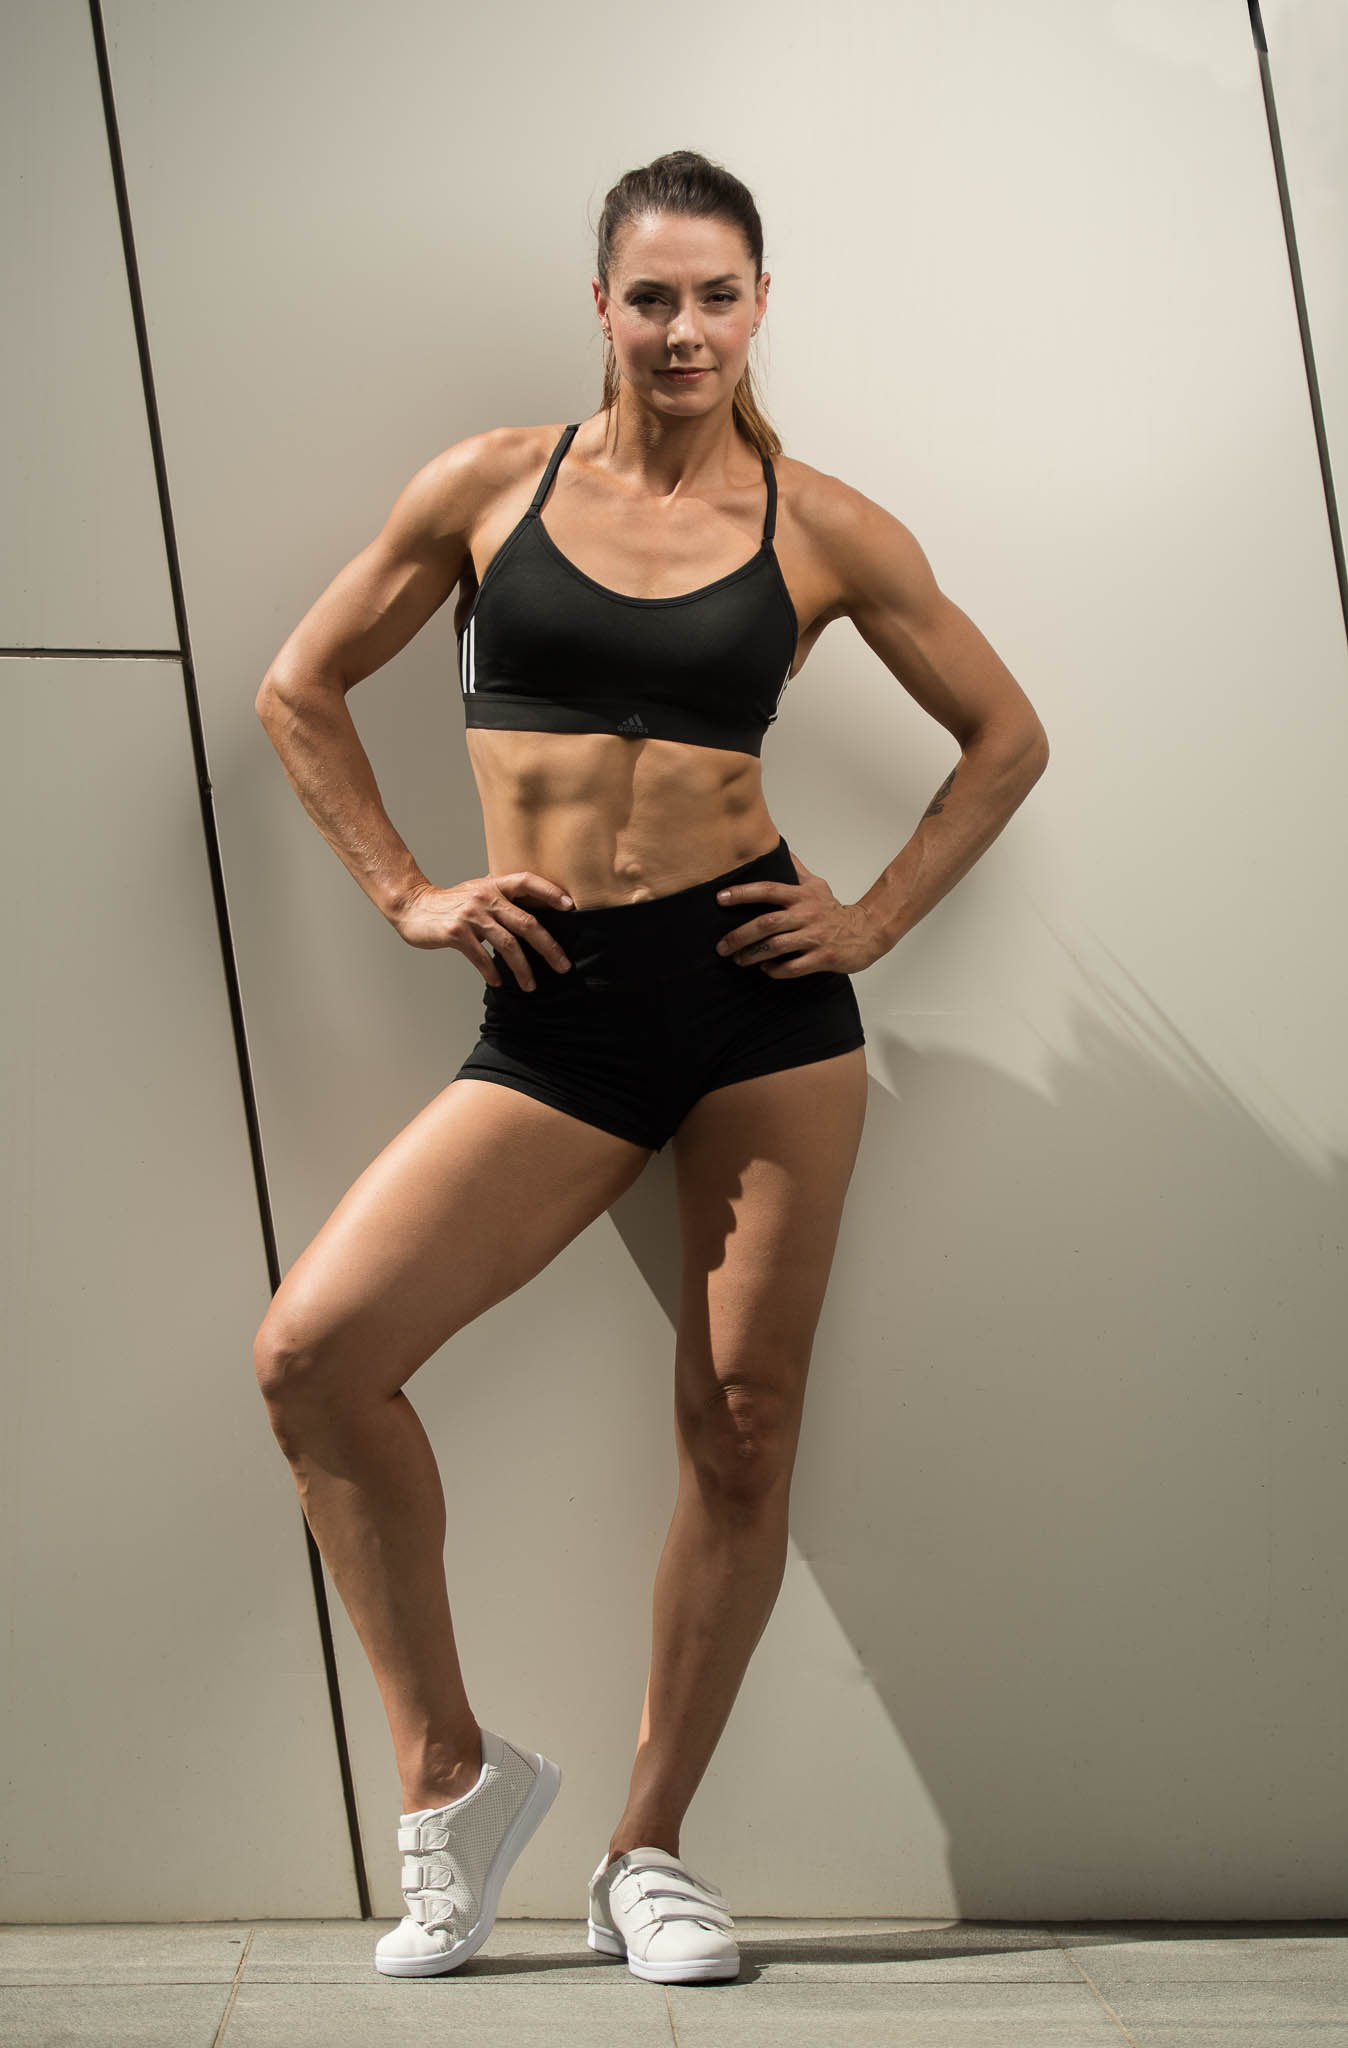 Paula Adelaides female fitness model during her shoot in Melbourne